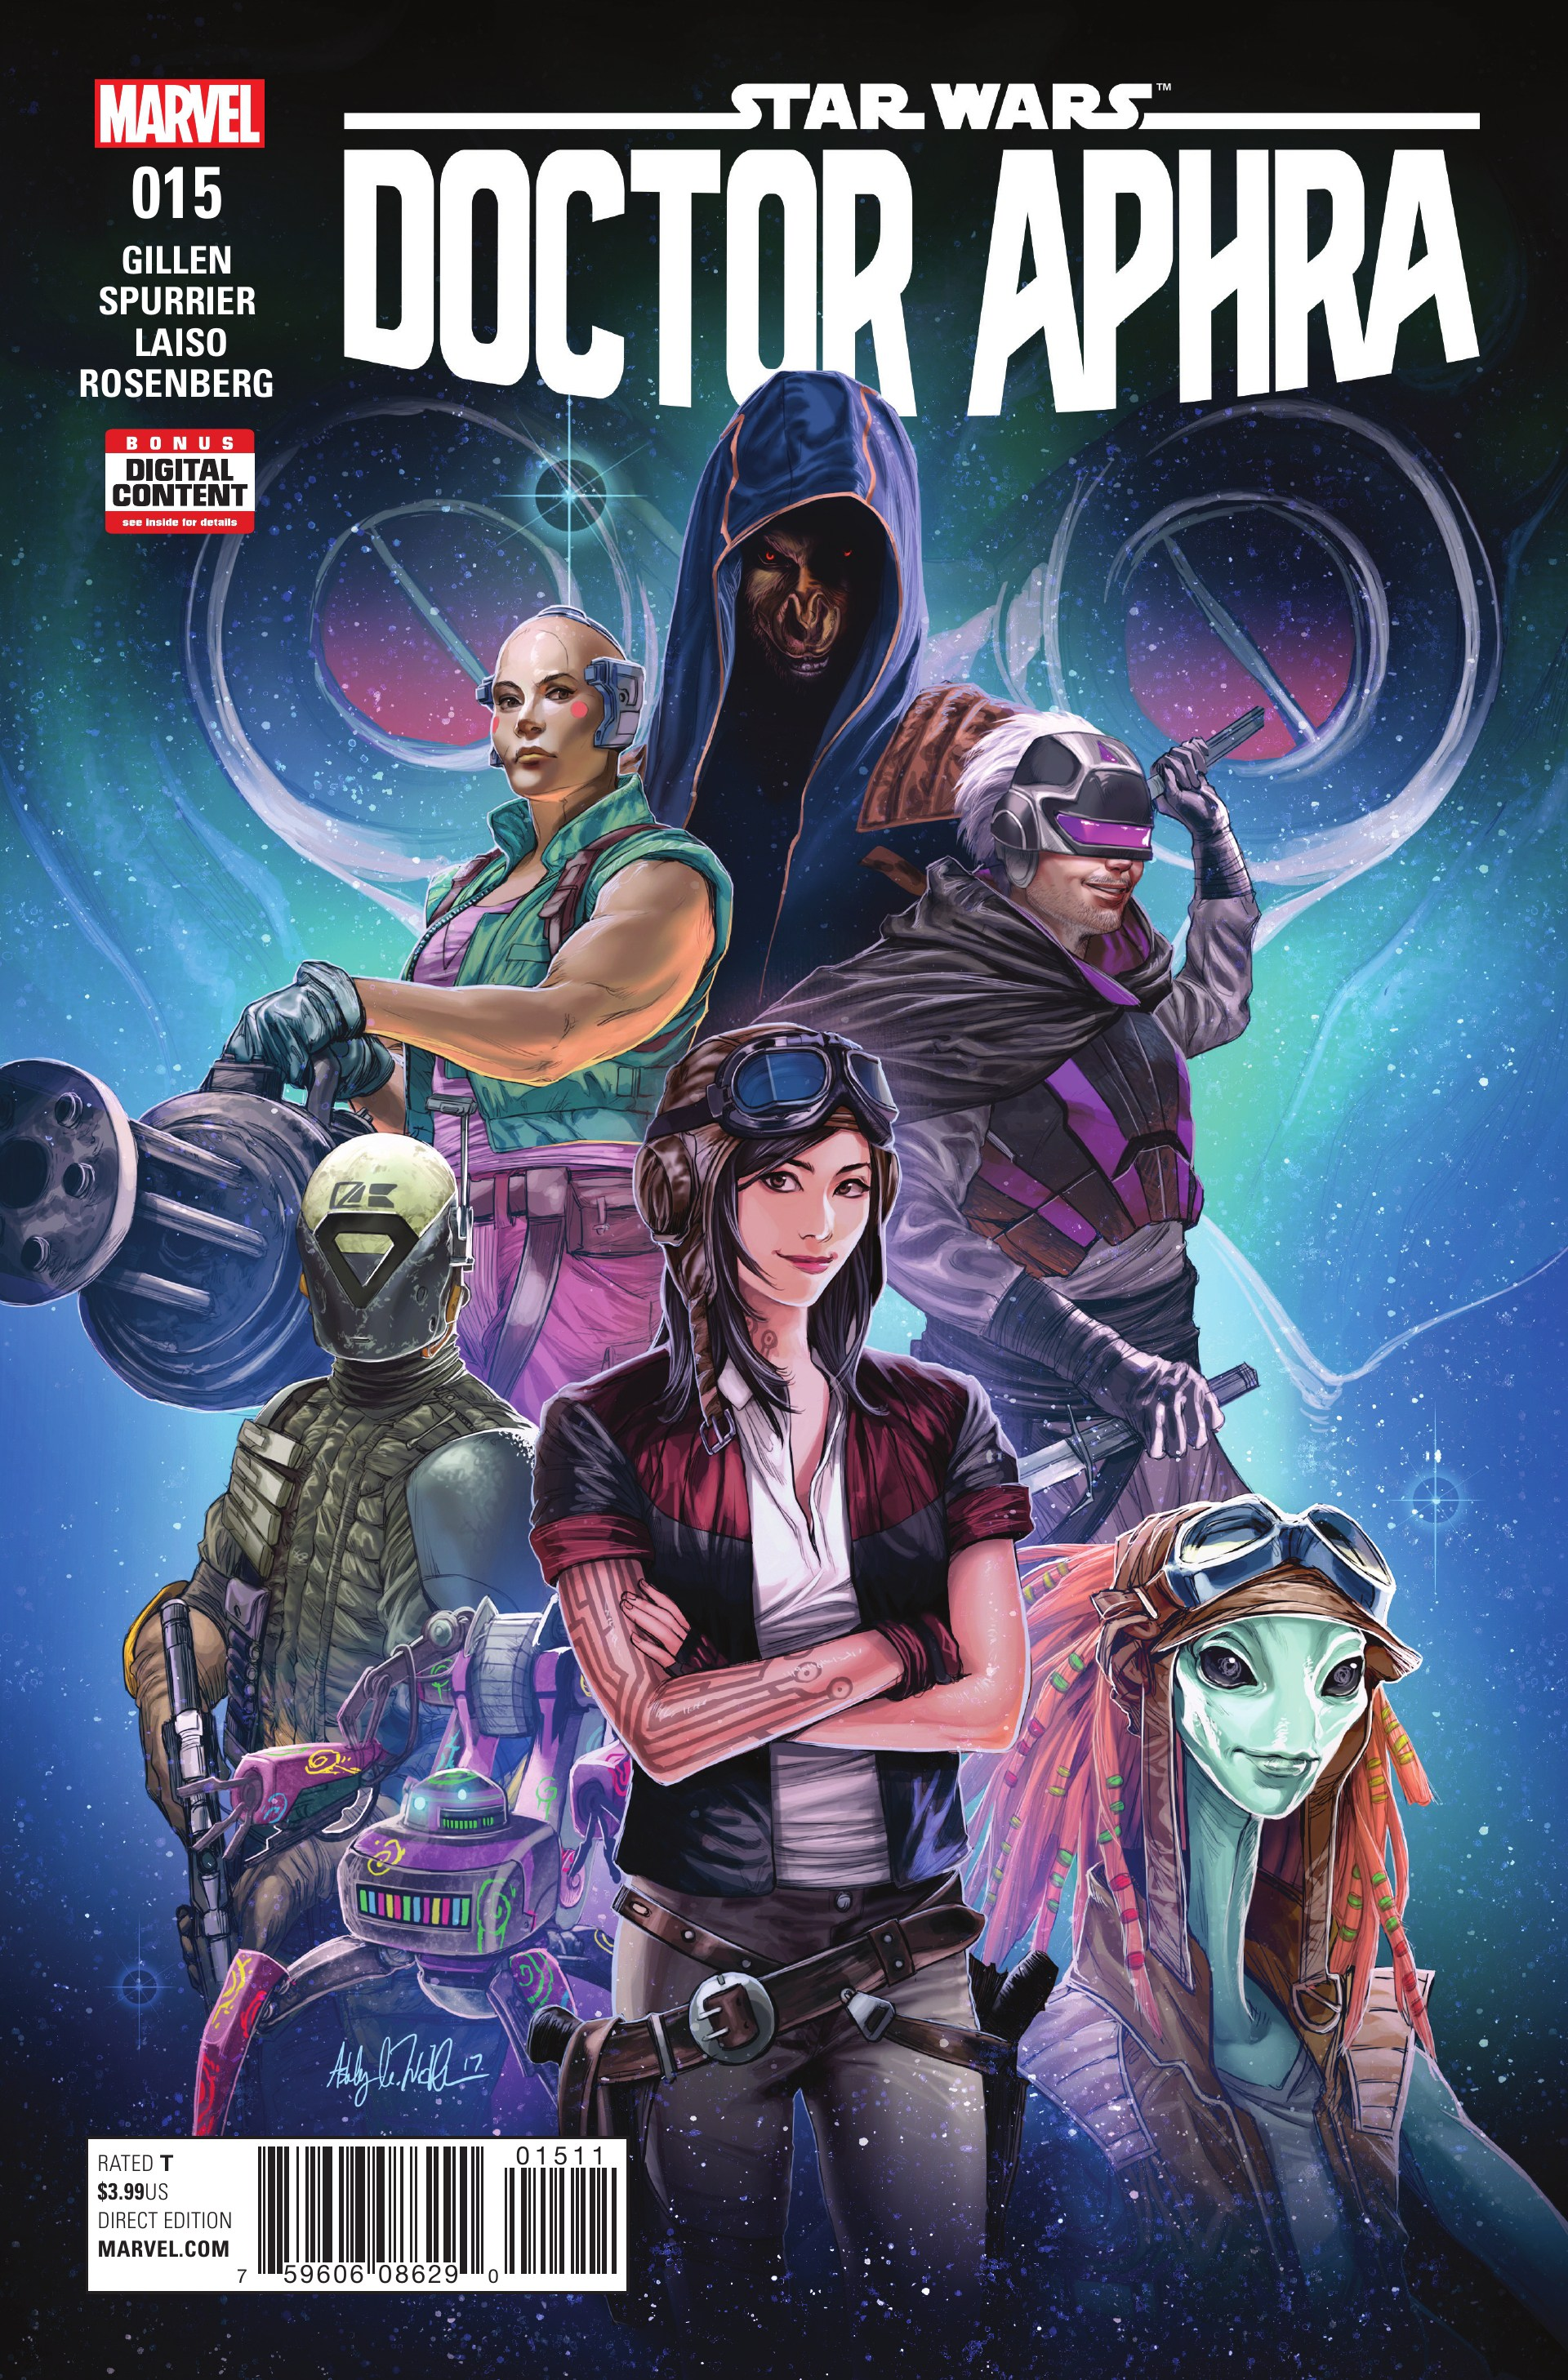 Star Wars: Doctor Aphra Vol 1 15